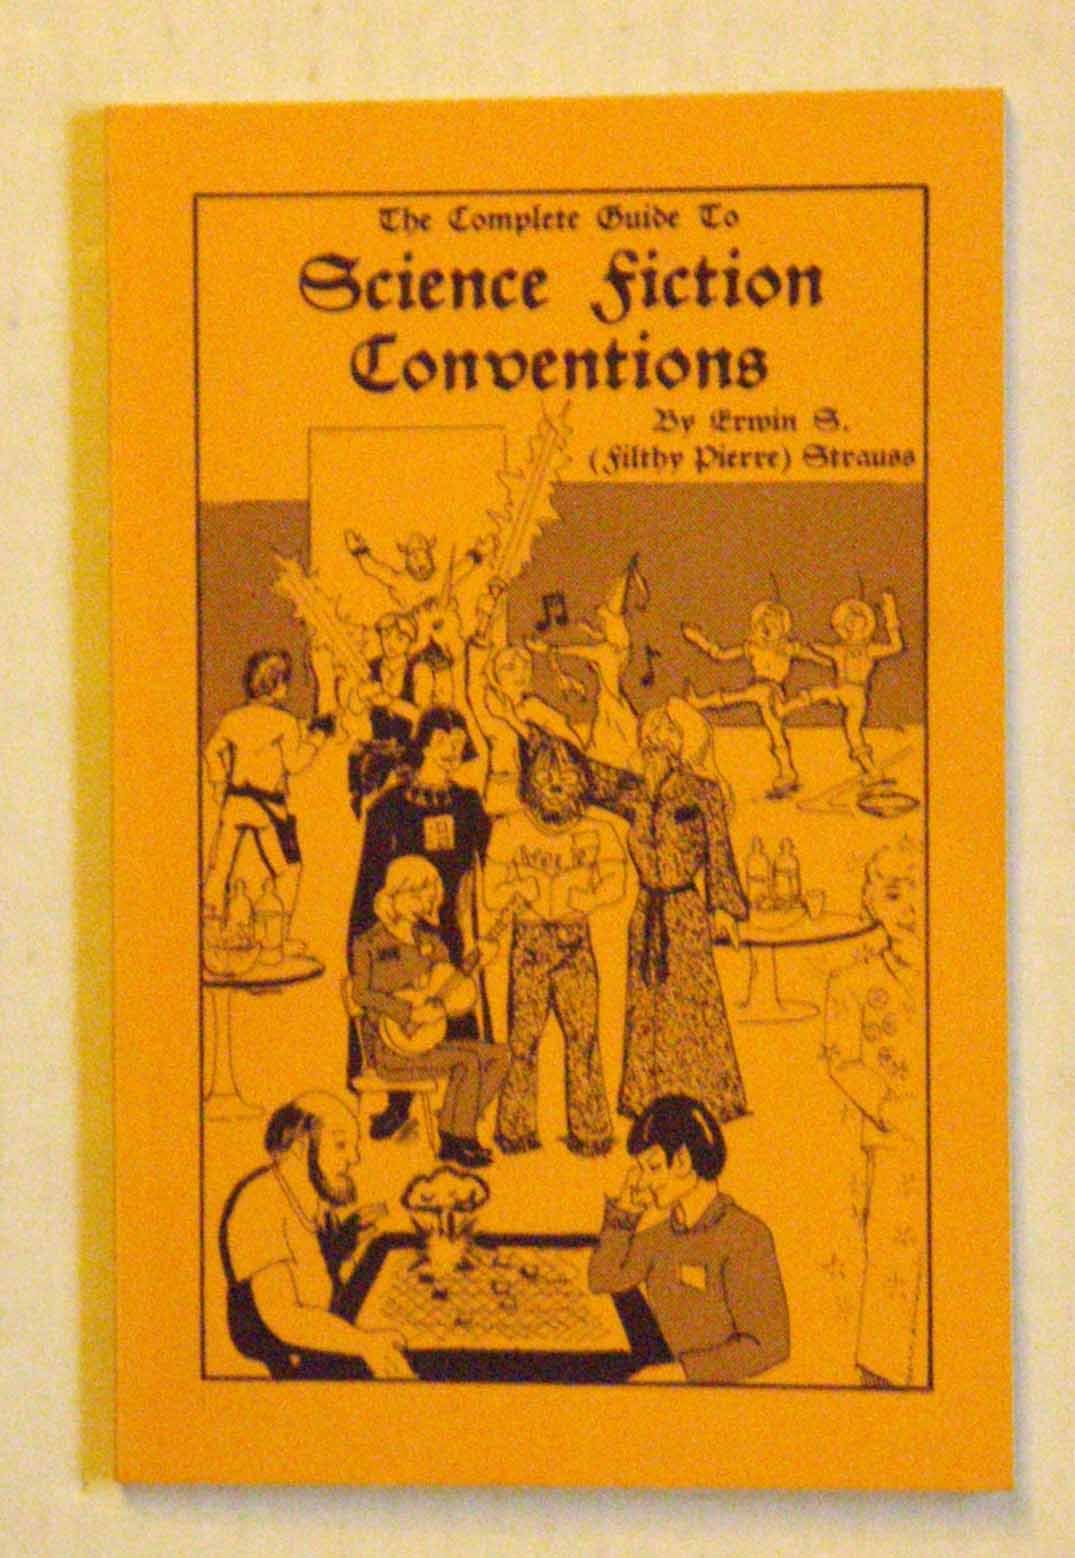 Complete Guide to Science Fiction Conventions, Strauss, Erwin S.